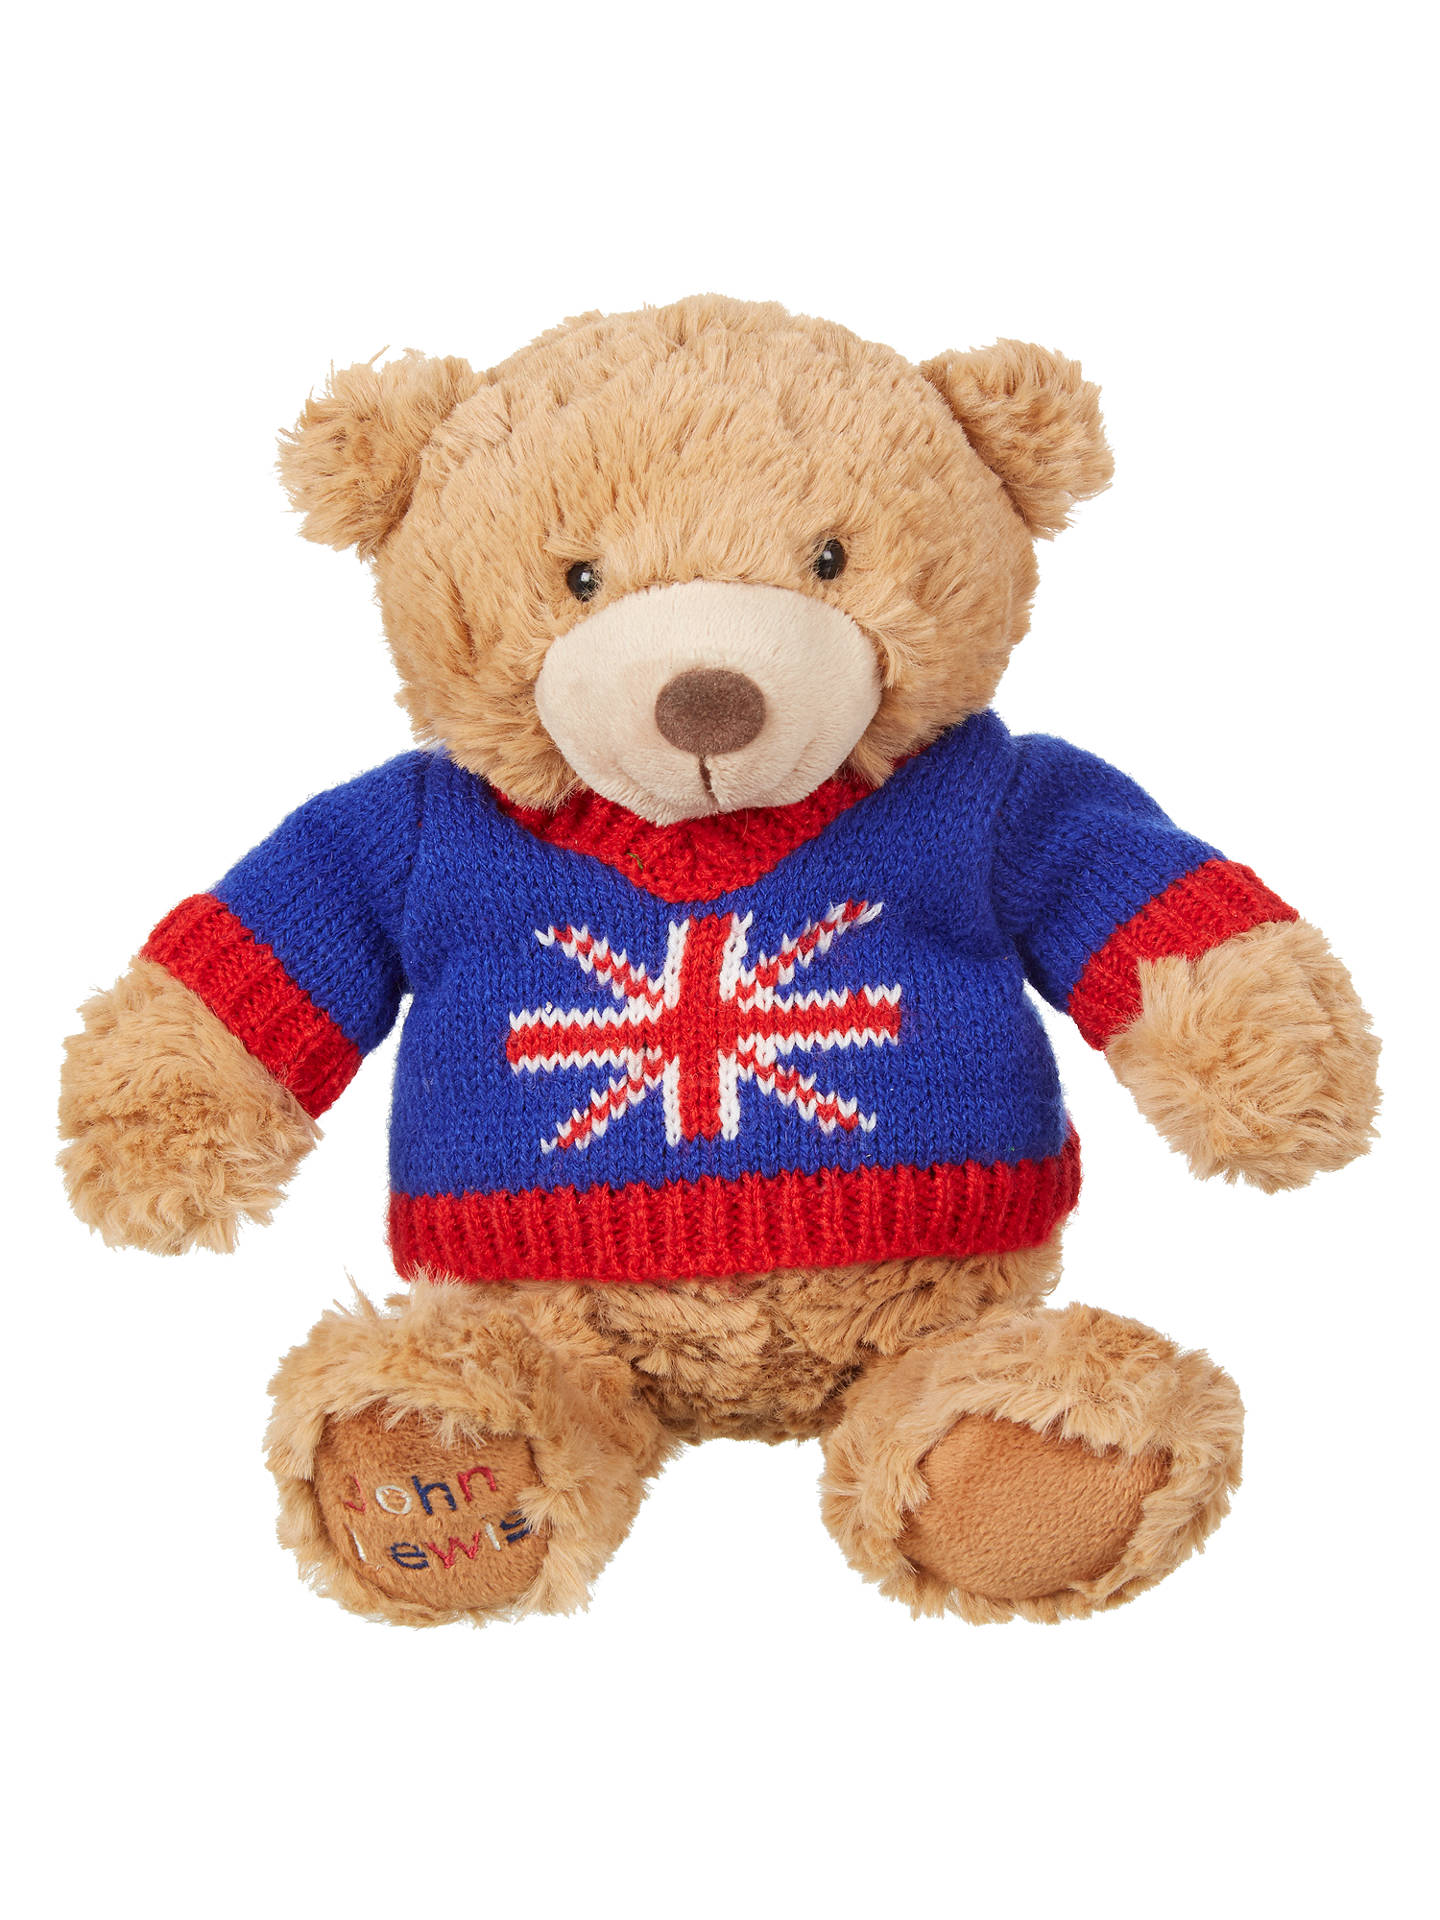 BuyJohn Lewis & Partners Tourism Jumper Lewis Teddy Bear Soft Toy Online at johnlewis.com